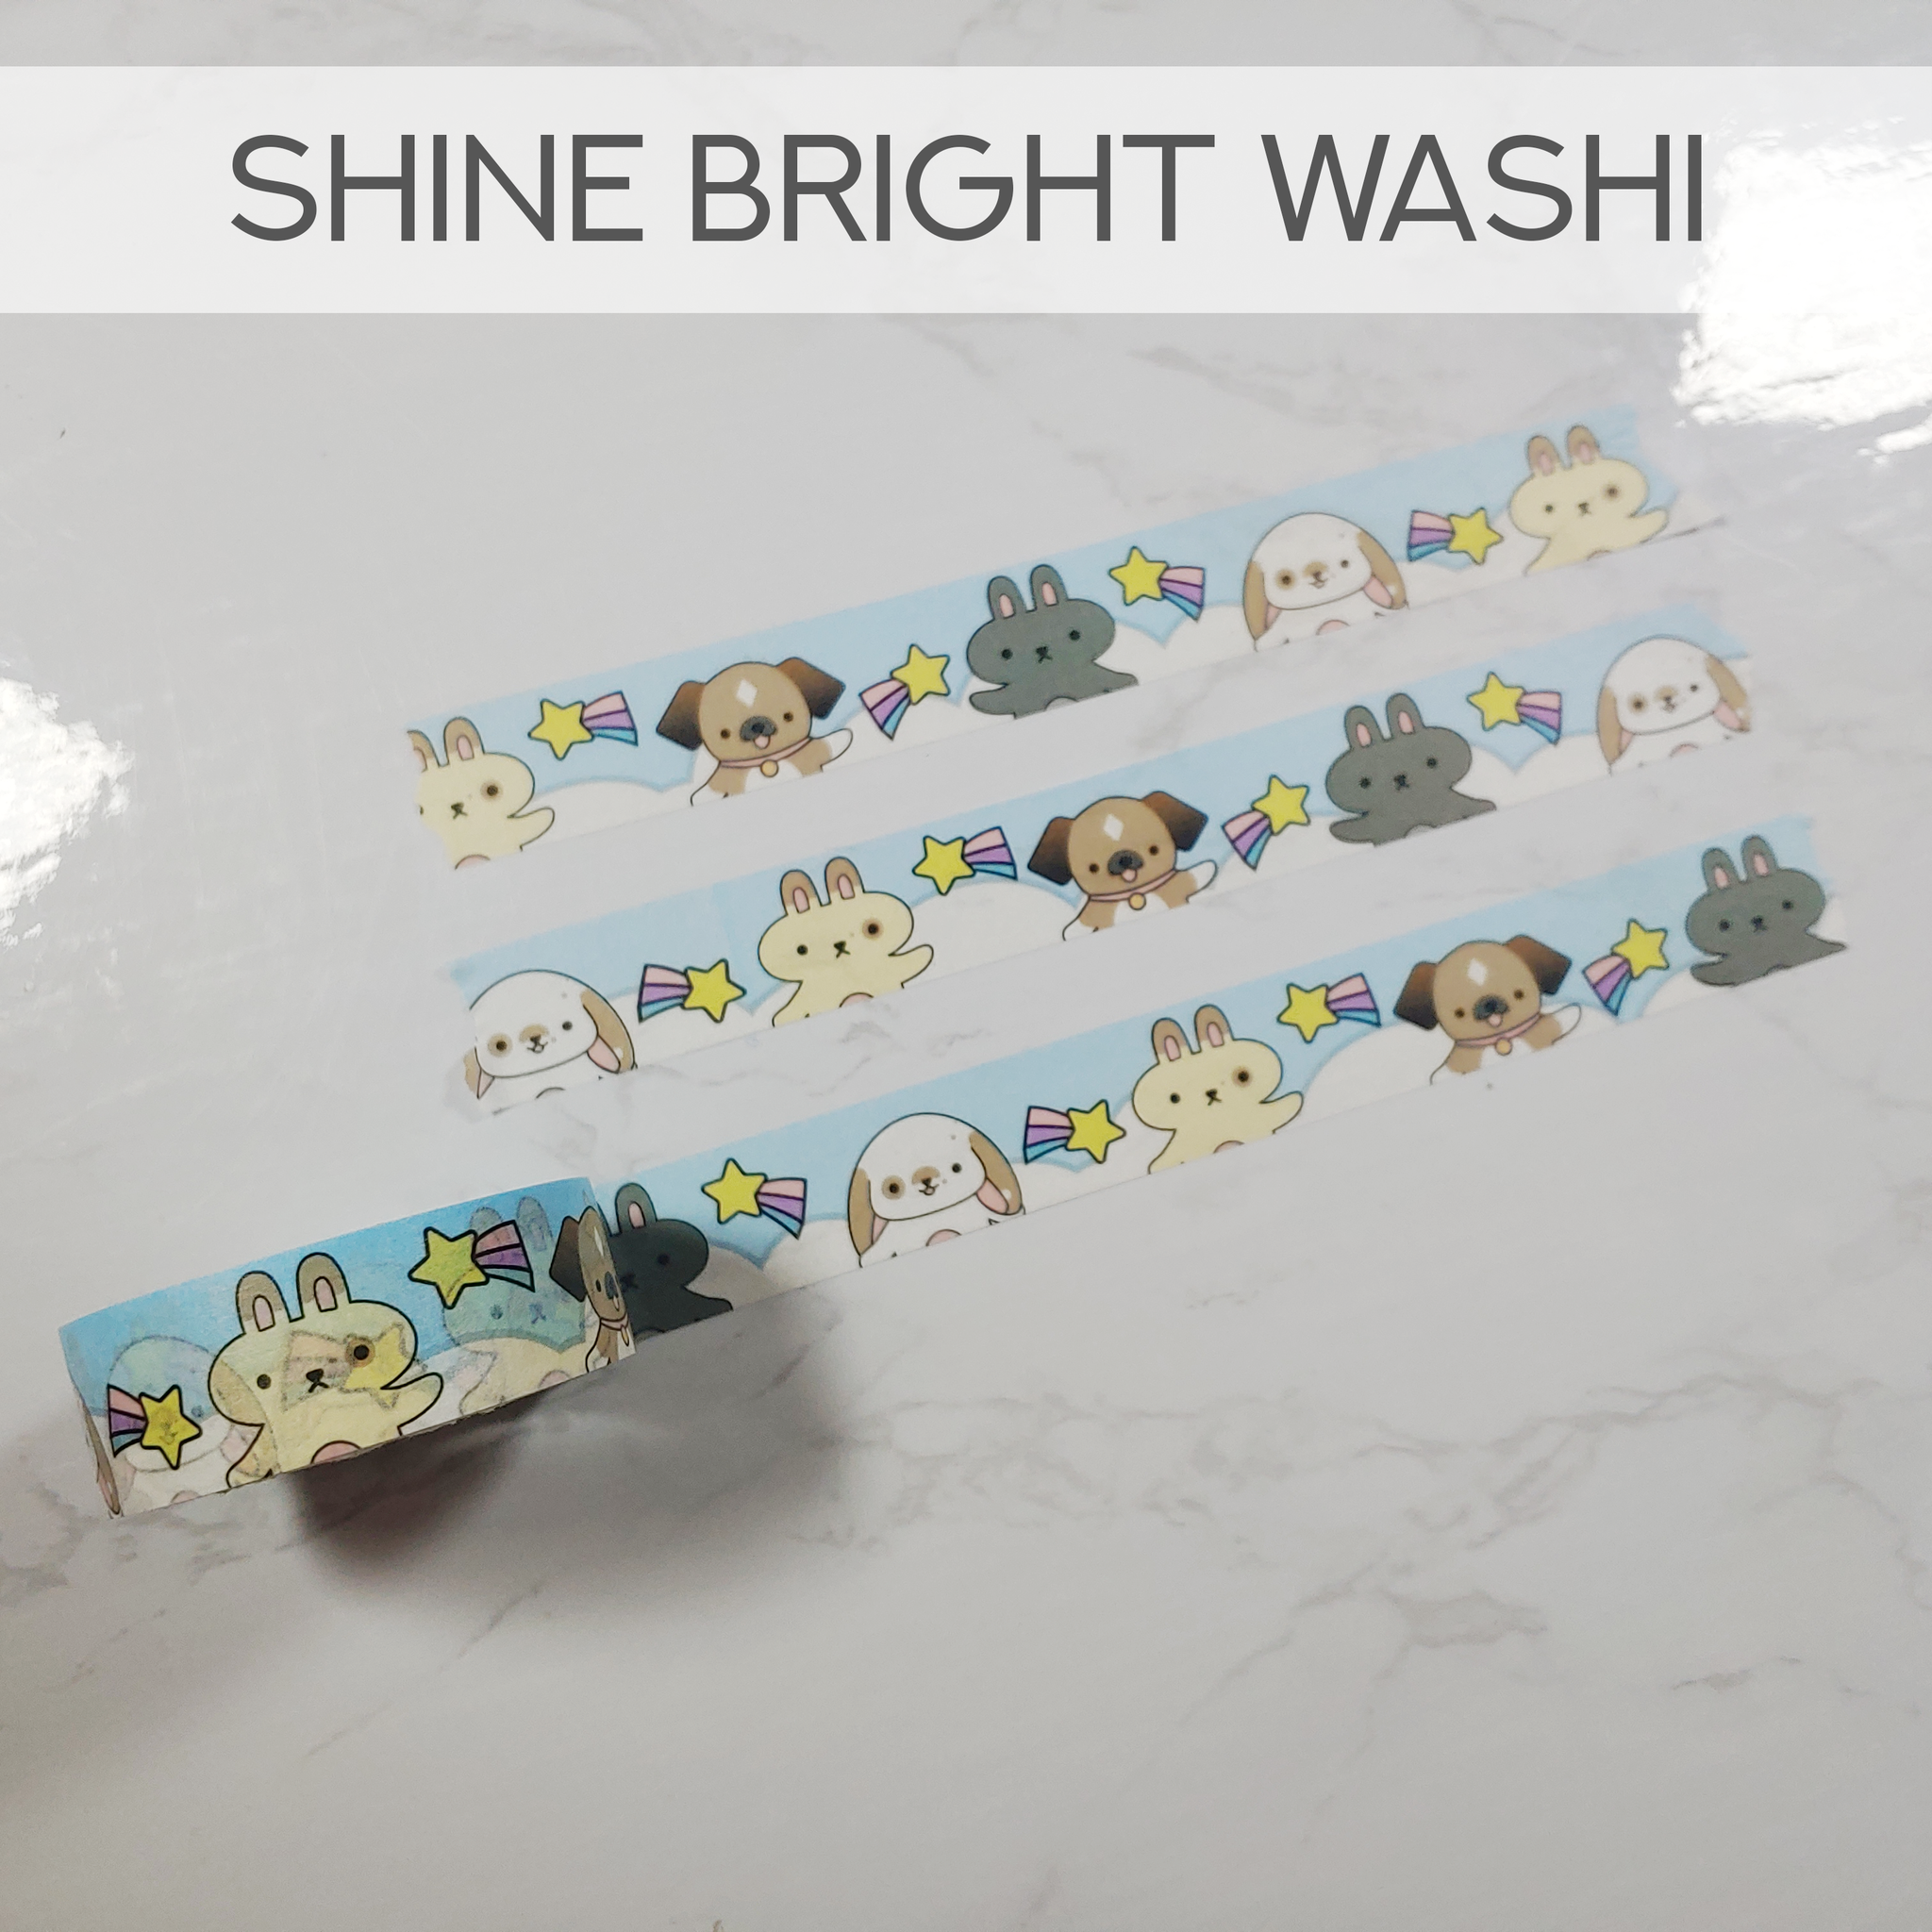 Shine Bright Washi Tape